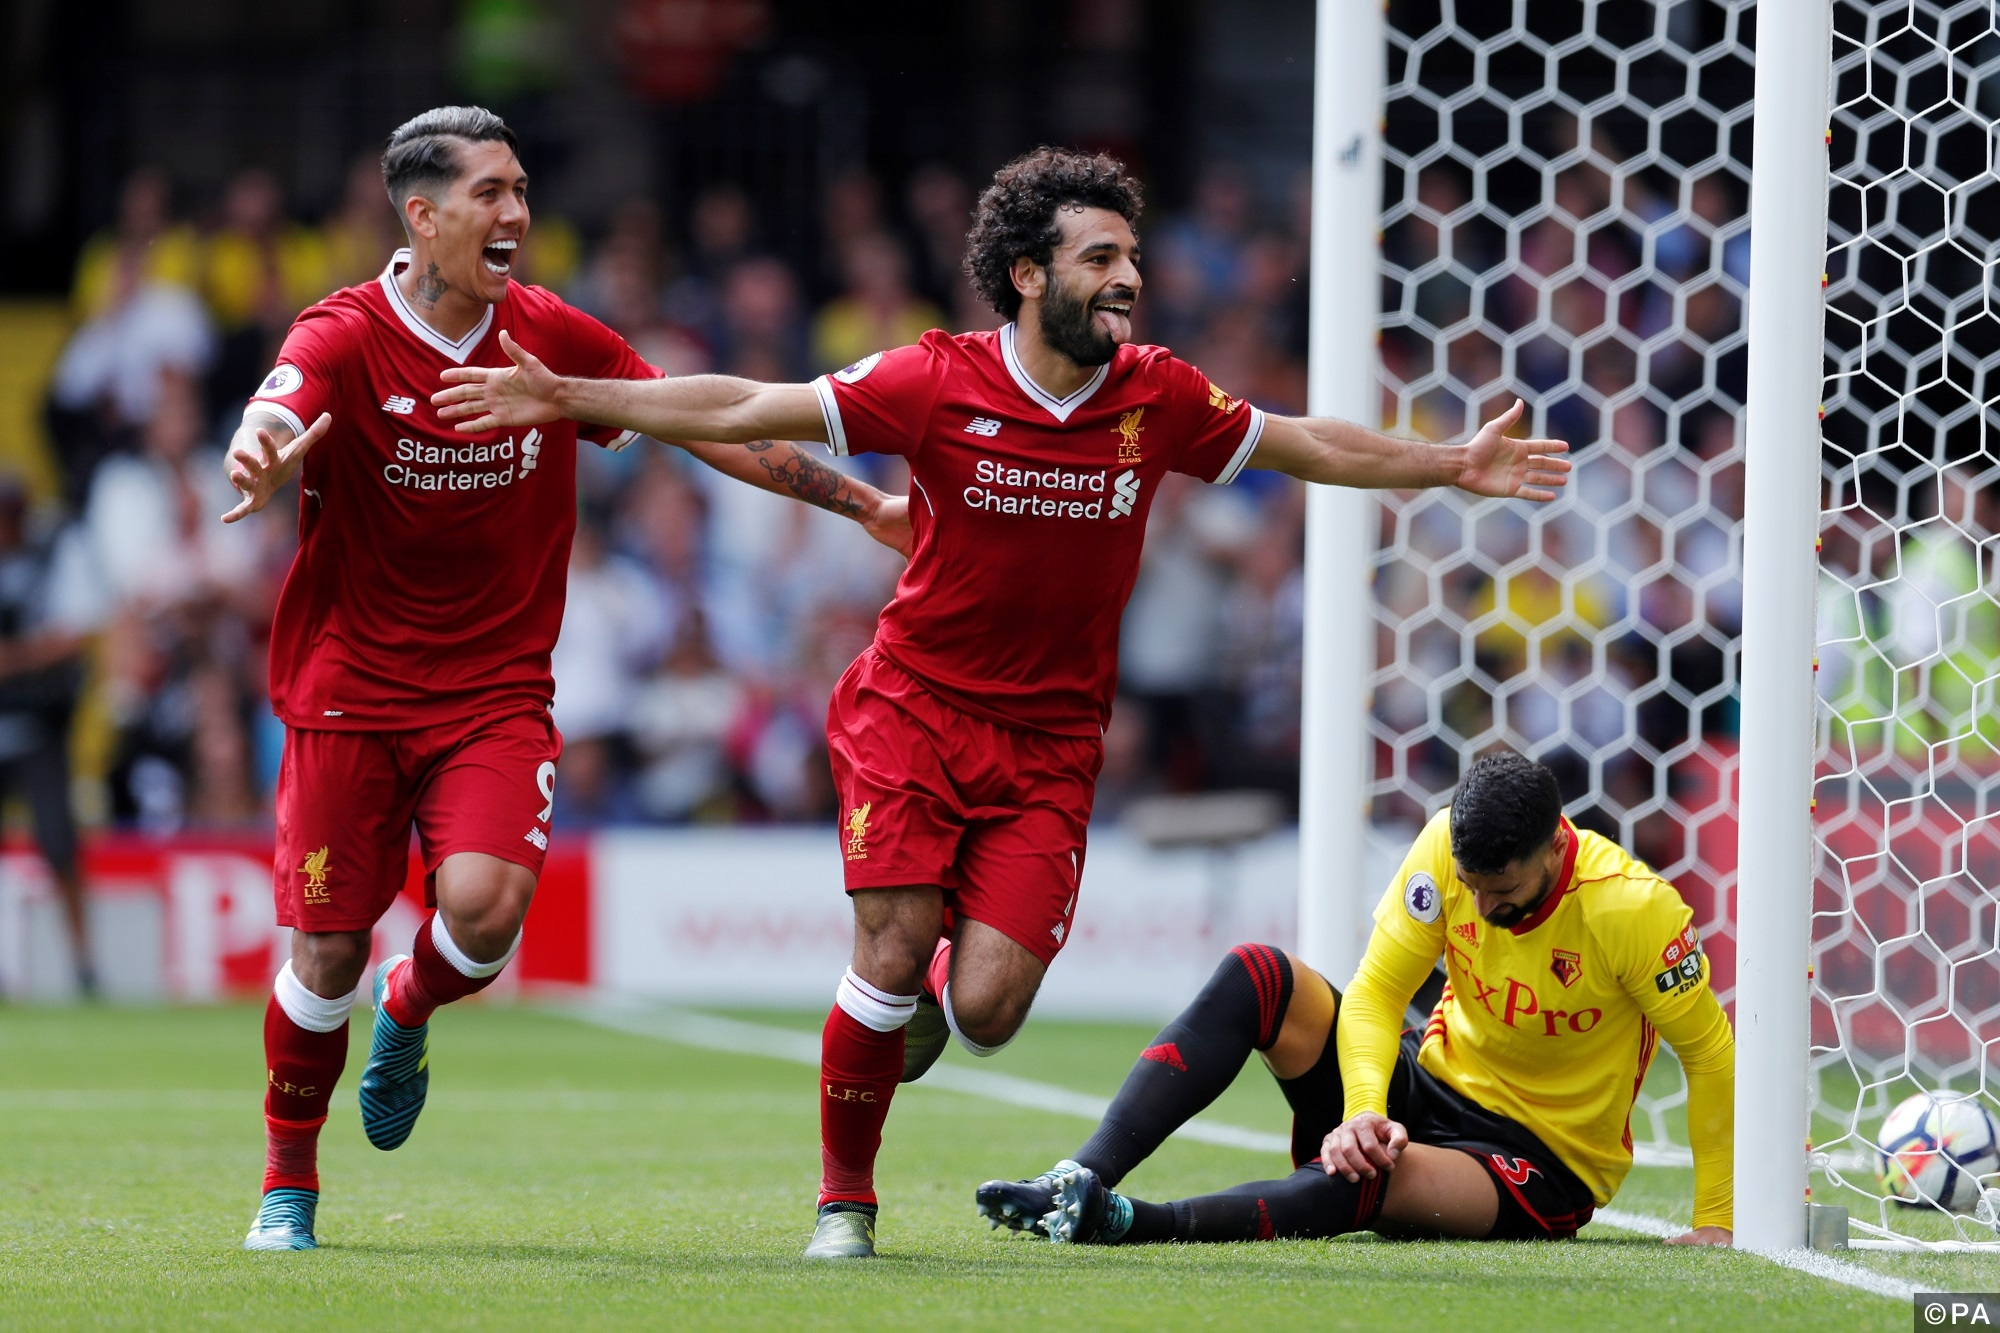 Hoffenheim vs Liverpool predictions and betting tips